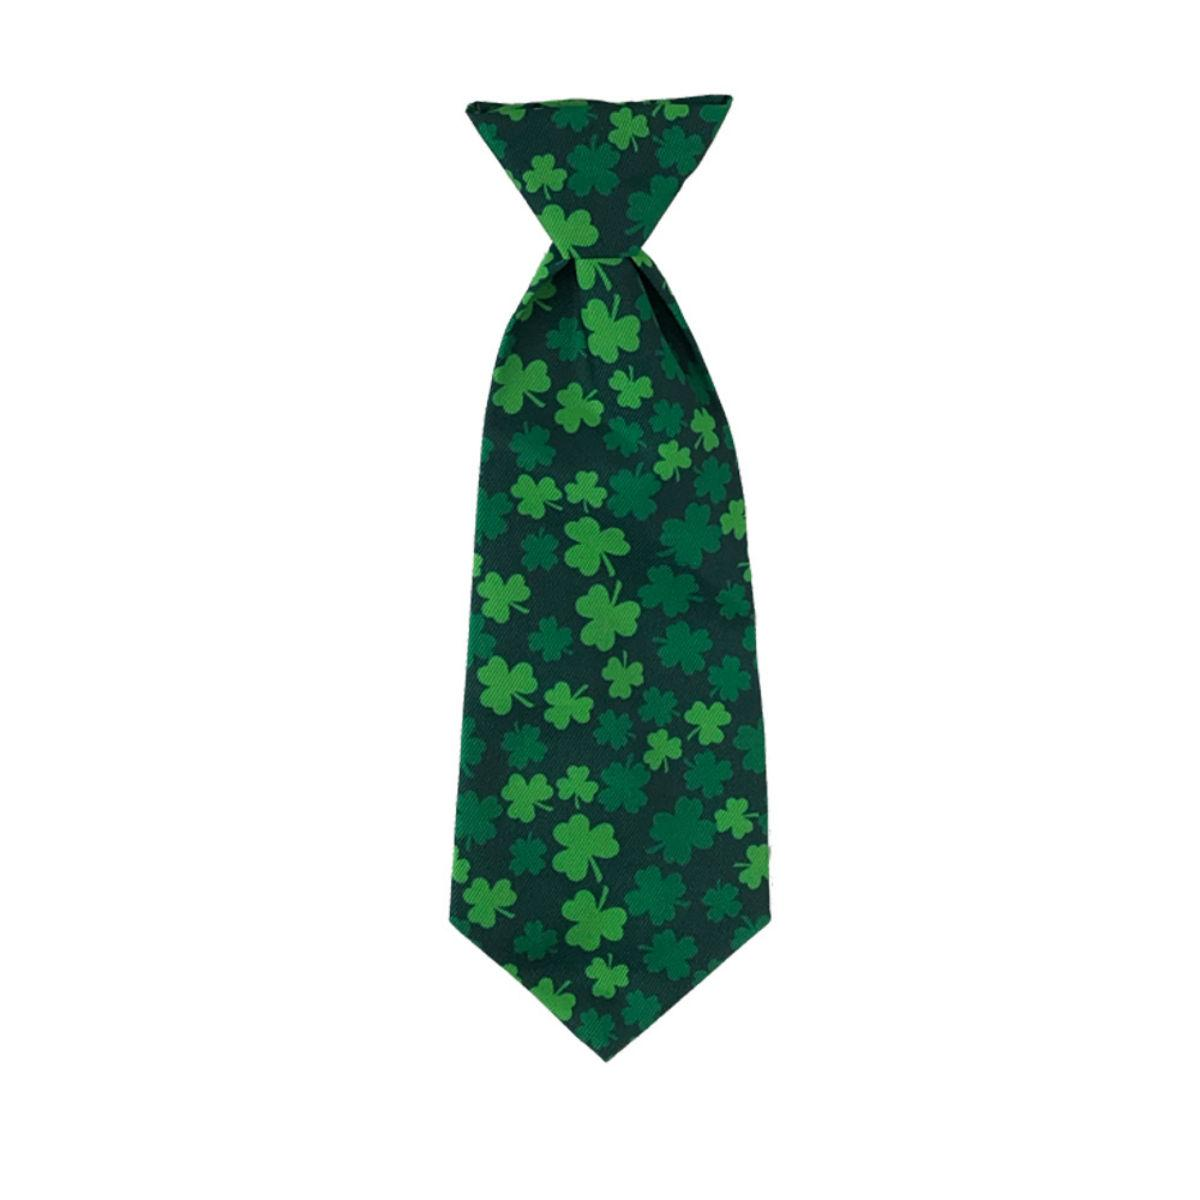 Huxley & Kent Long Tie Collar Attachment Dog Necktie - Lucky Shamrock